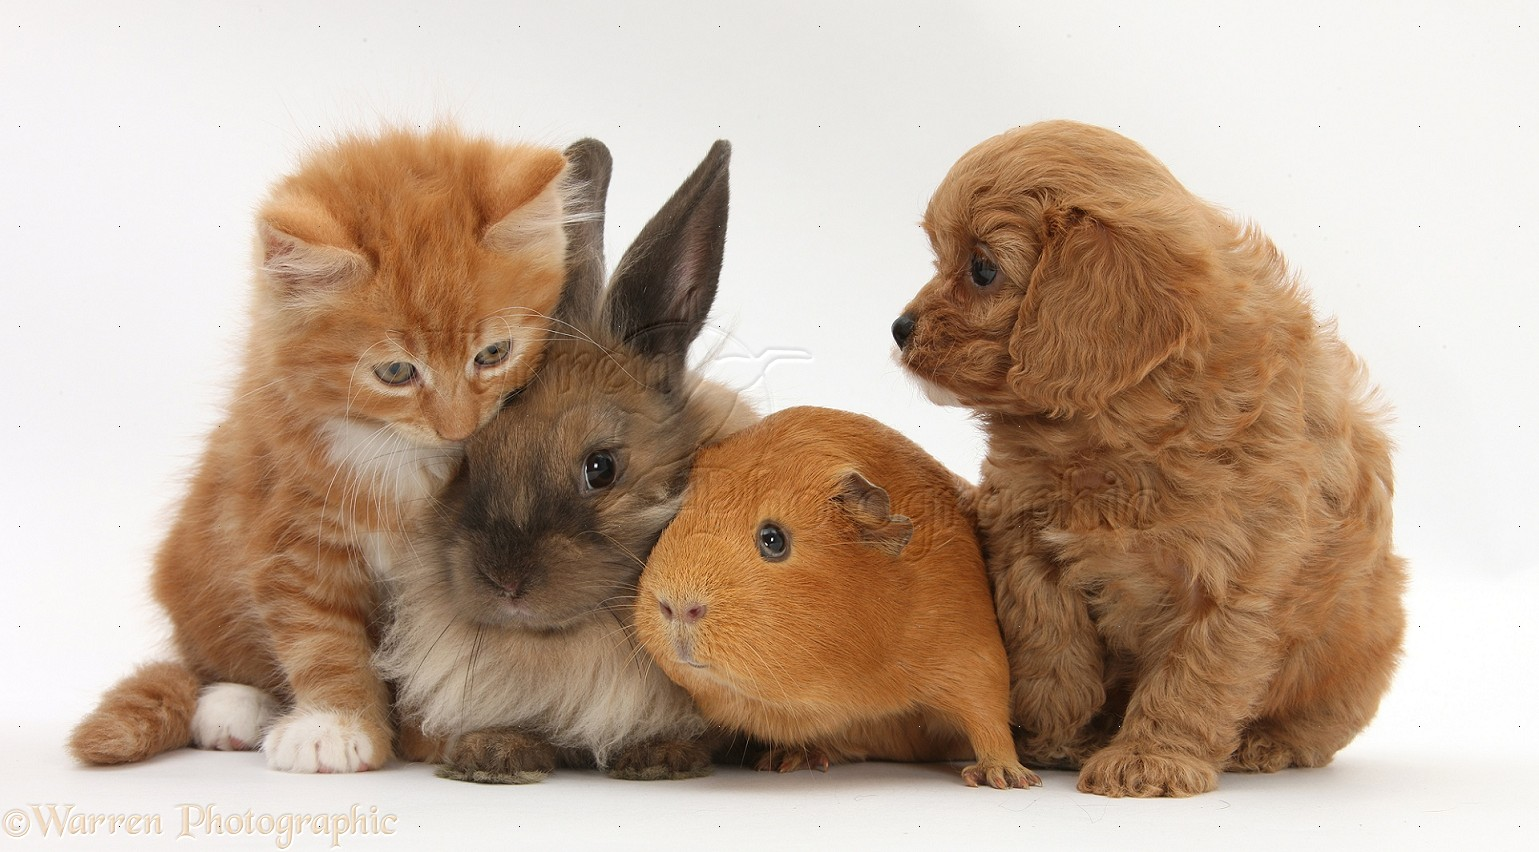 25575-Ginger-kitten-with-Cavapoo-pup-rabbit-and-Guinea-pig-white-background